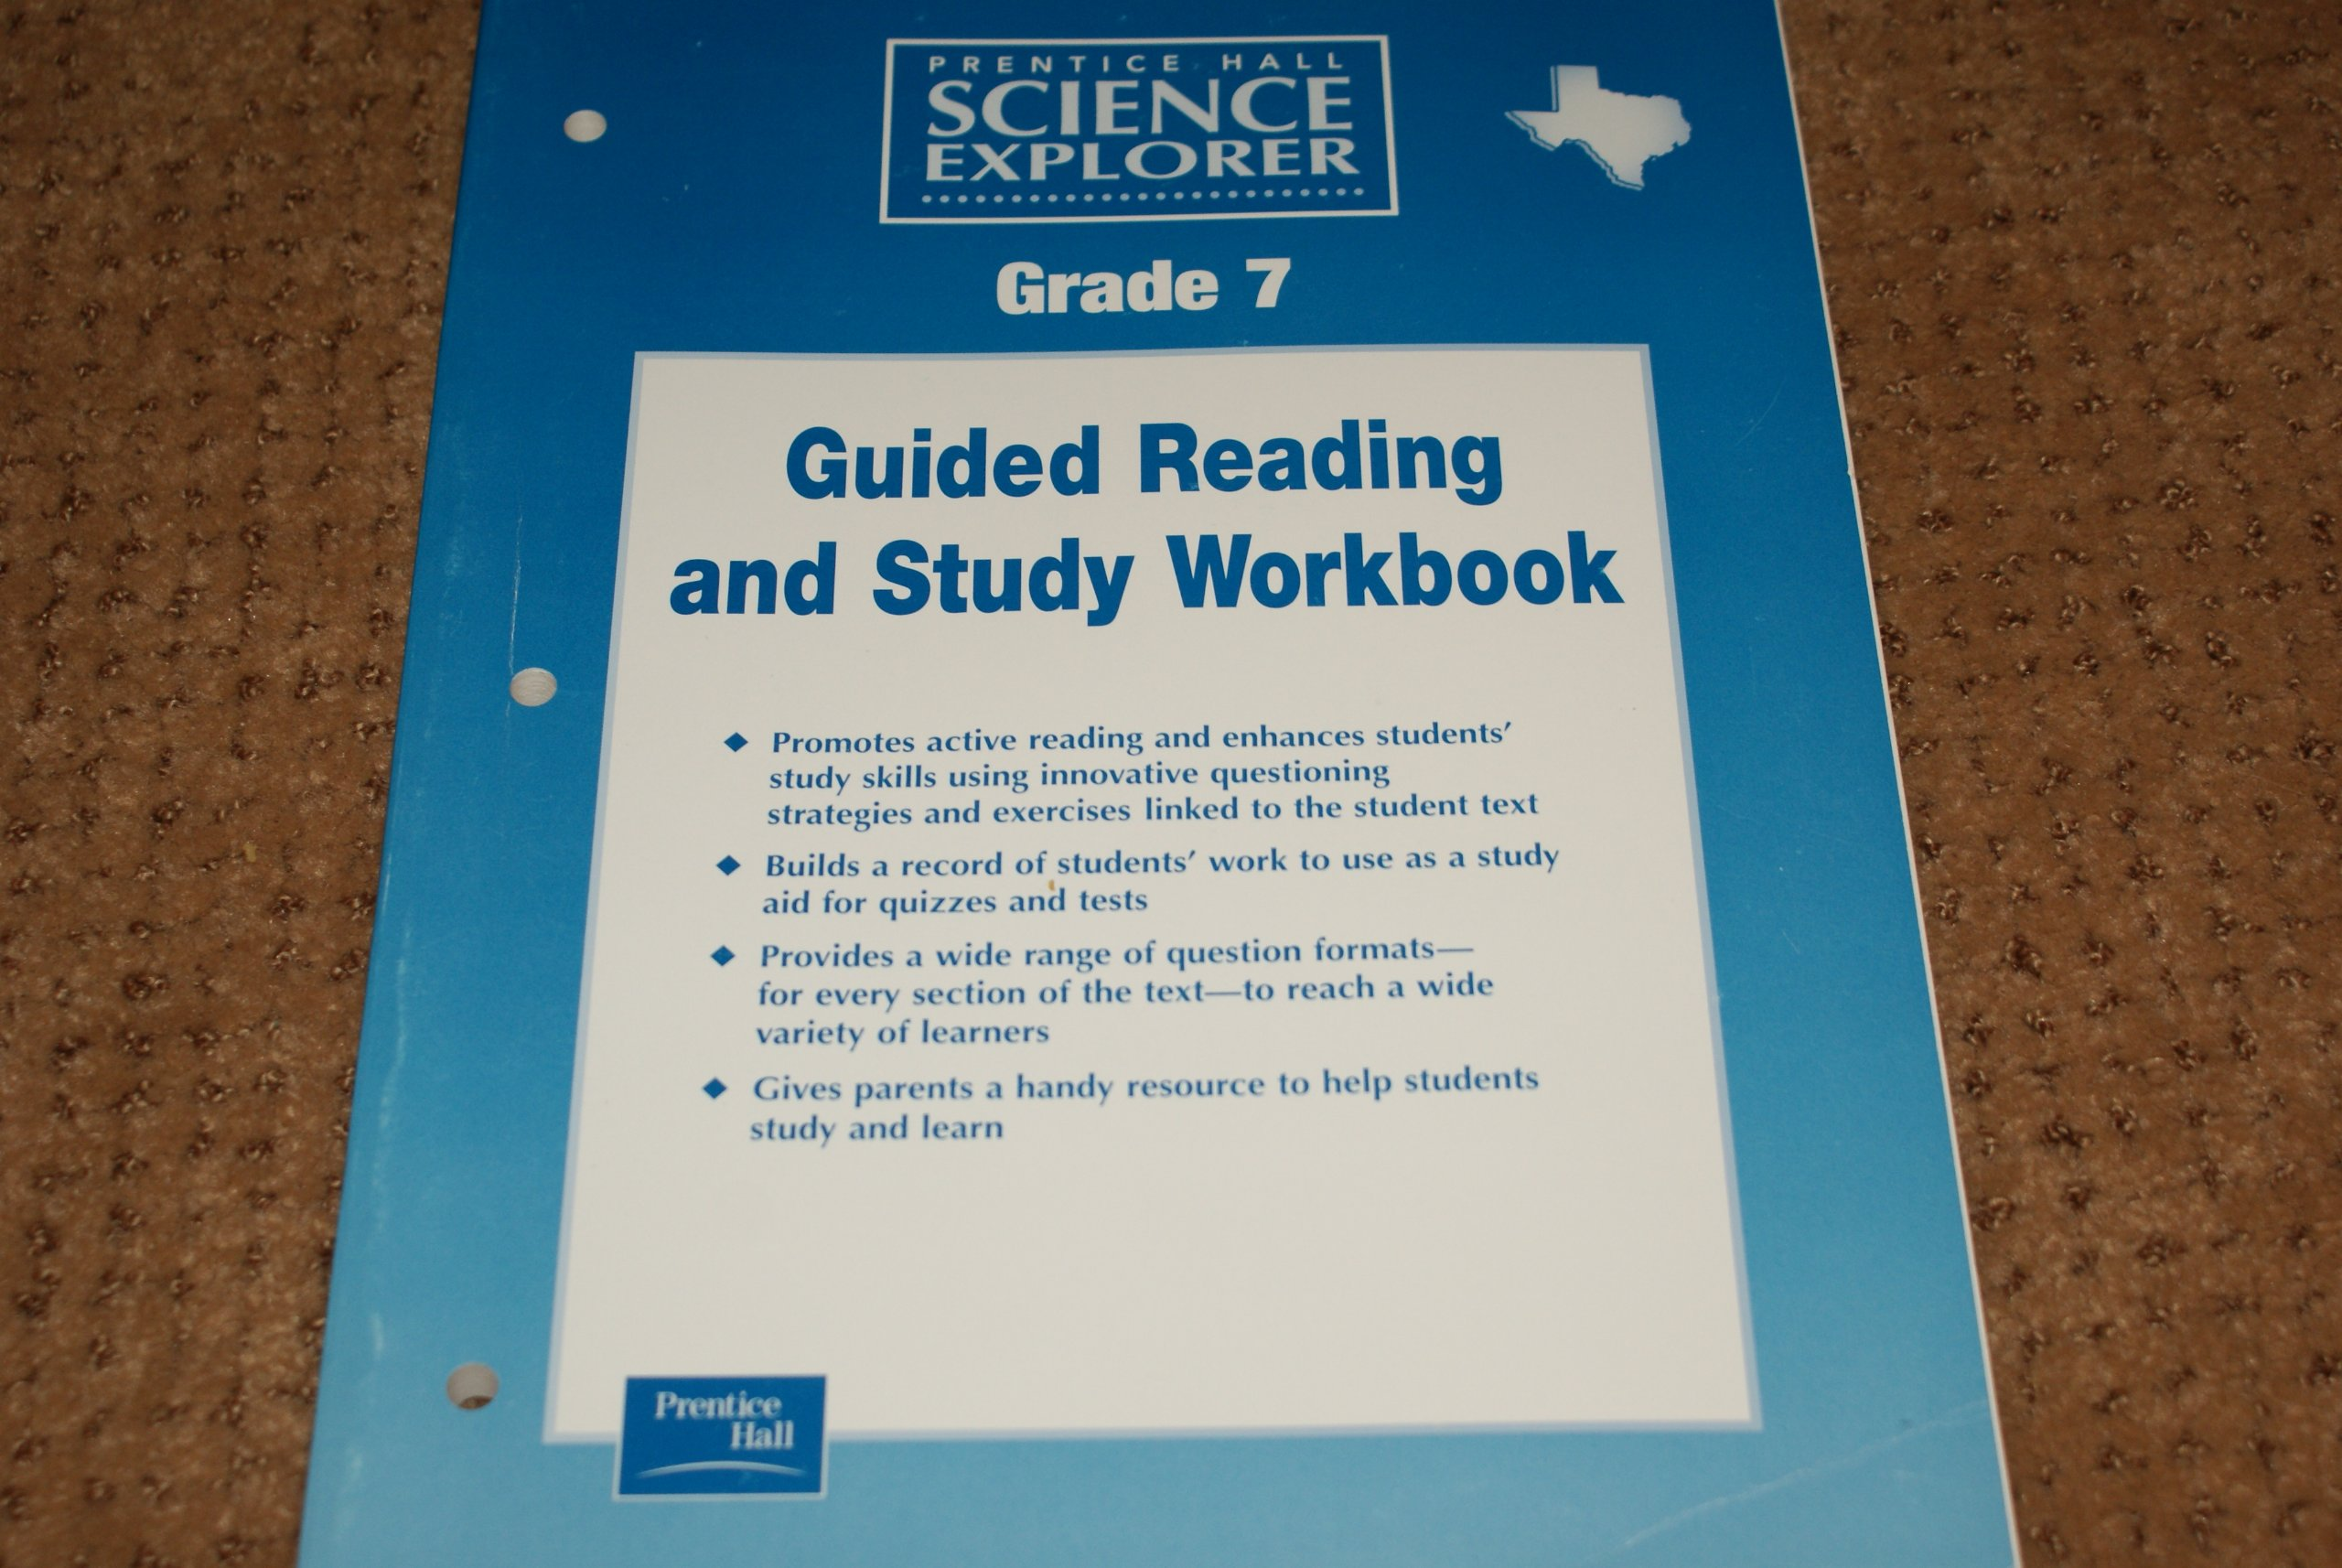 Prentice Hall Science Explorer Guided Reading and Study Workbook